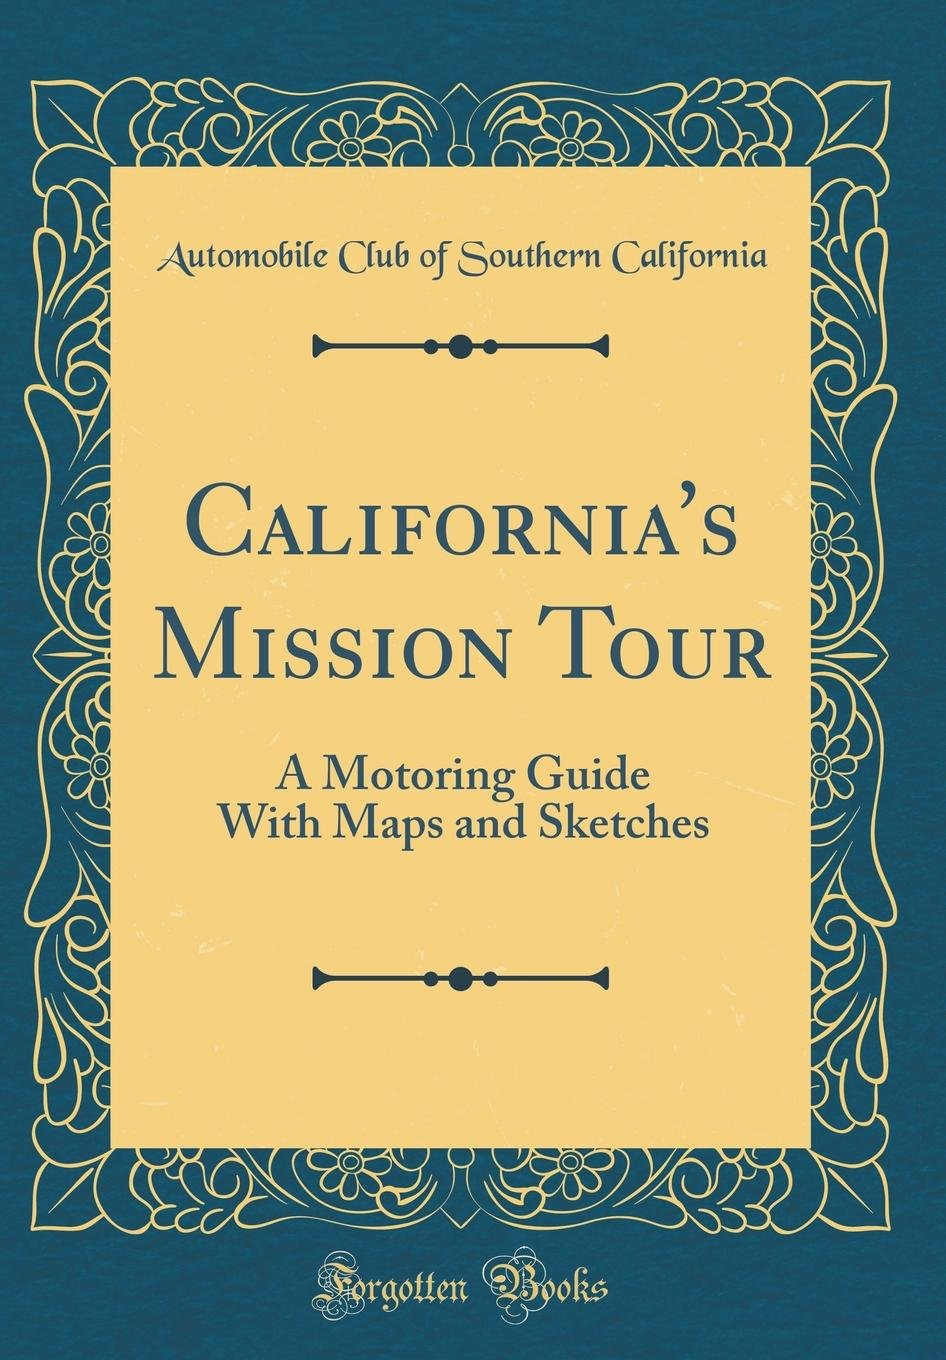 Missions In Southern California Map.California S Mission Tour A Motoring Guide With Maps And Sketches